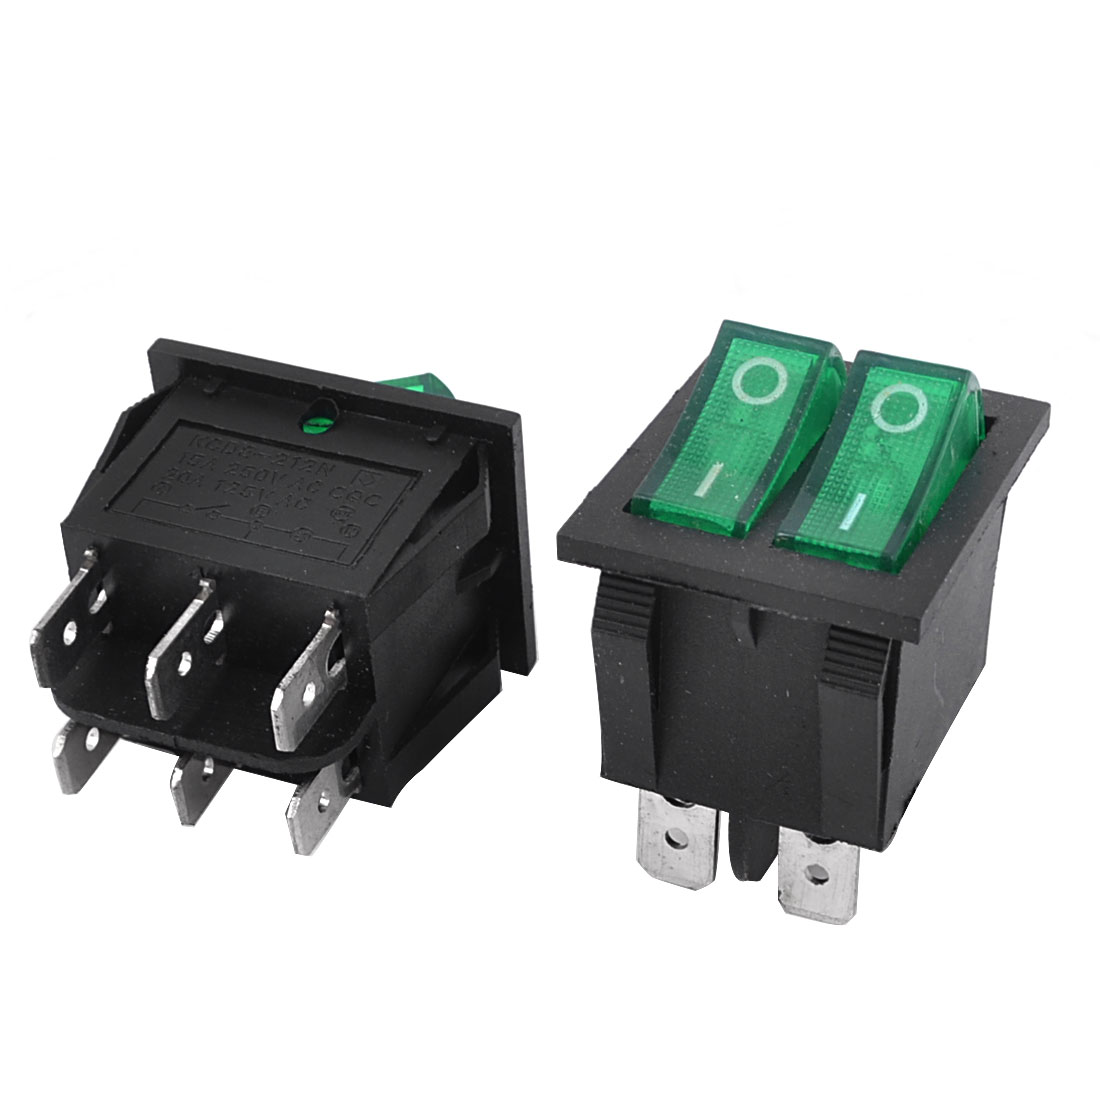 Green Light SPST 2 Snap in Rocker Switch AC 250V/15A 125V/20A 2PCS